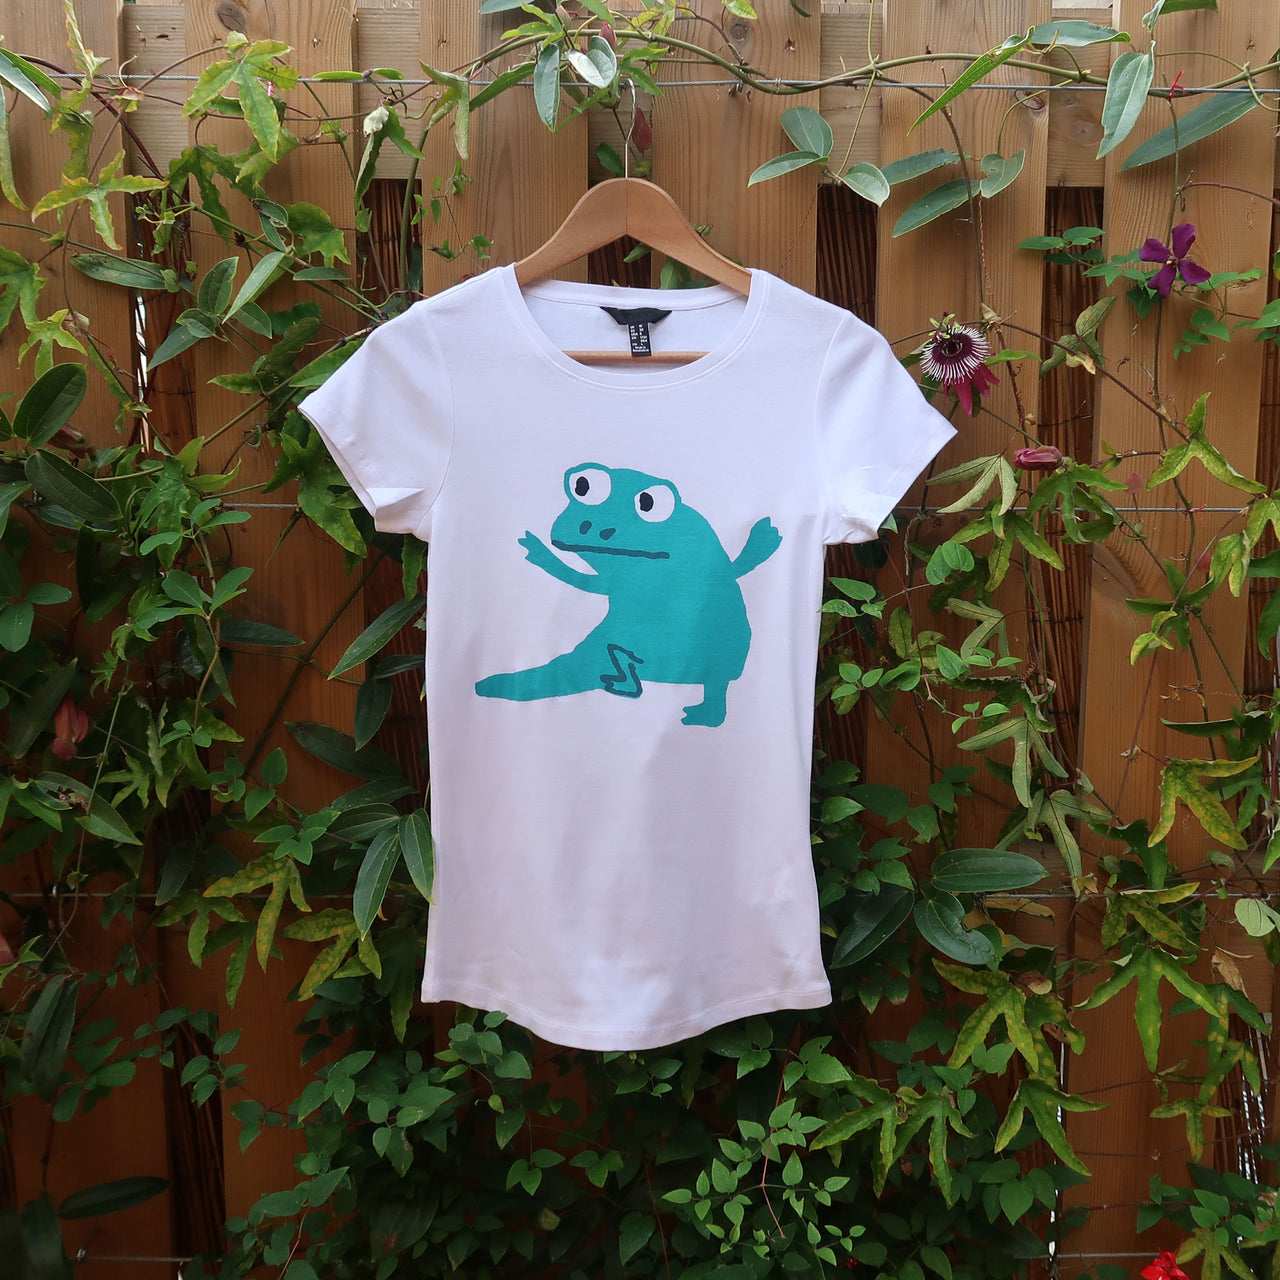 Newt Turquoise T-shirt - Woman 14 Slim Fit